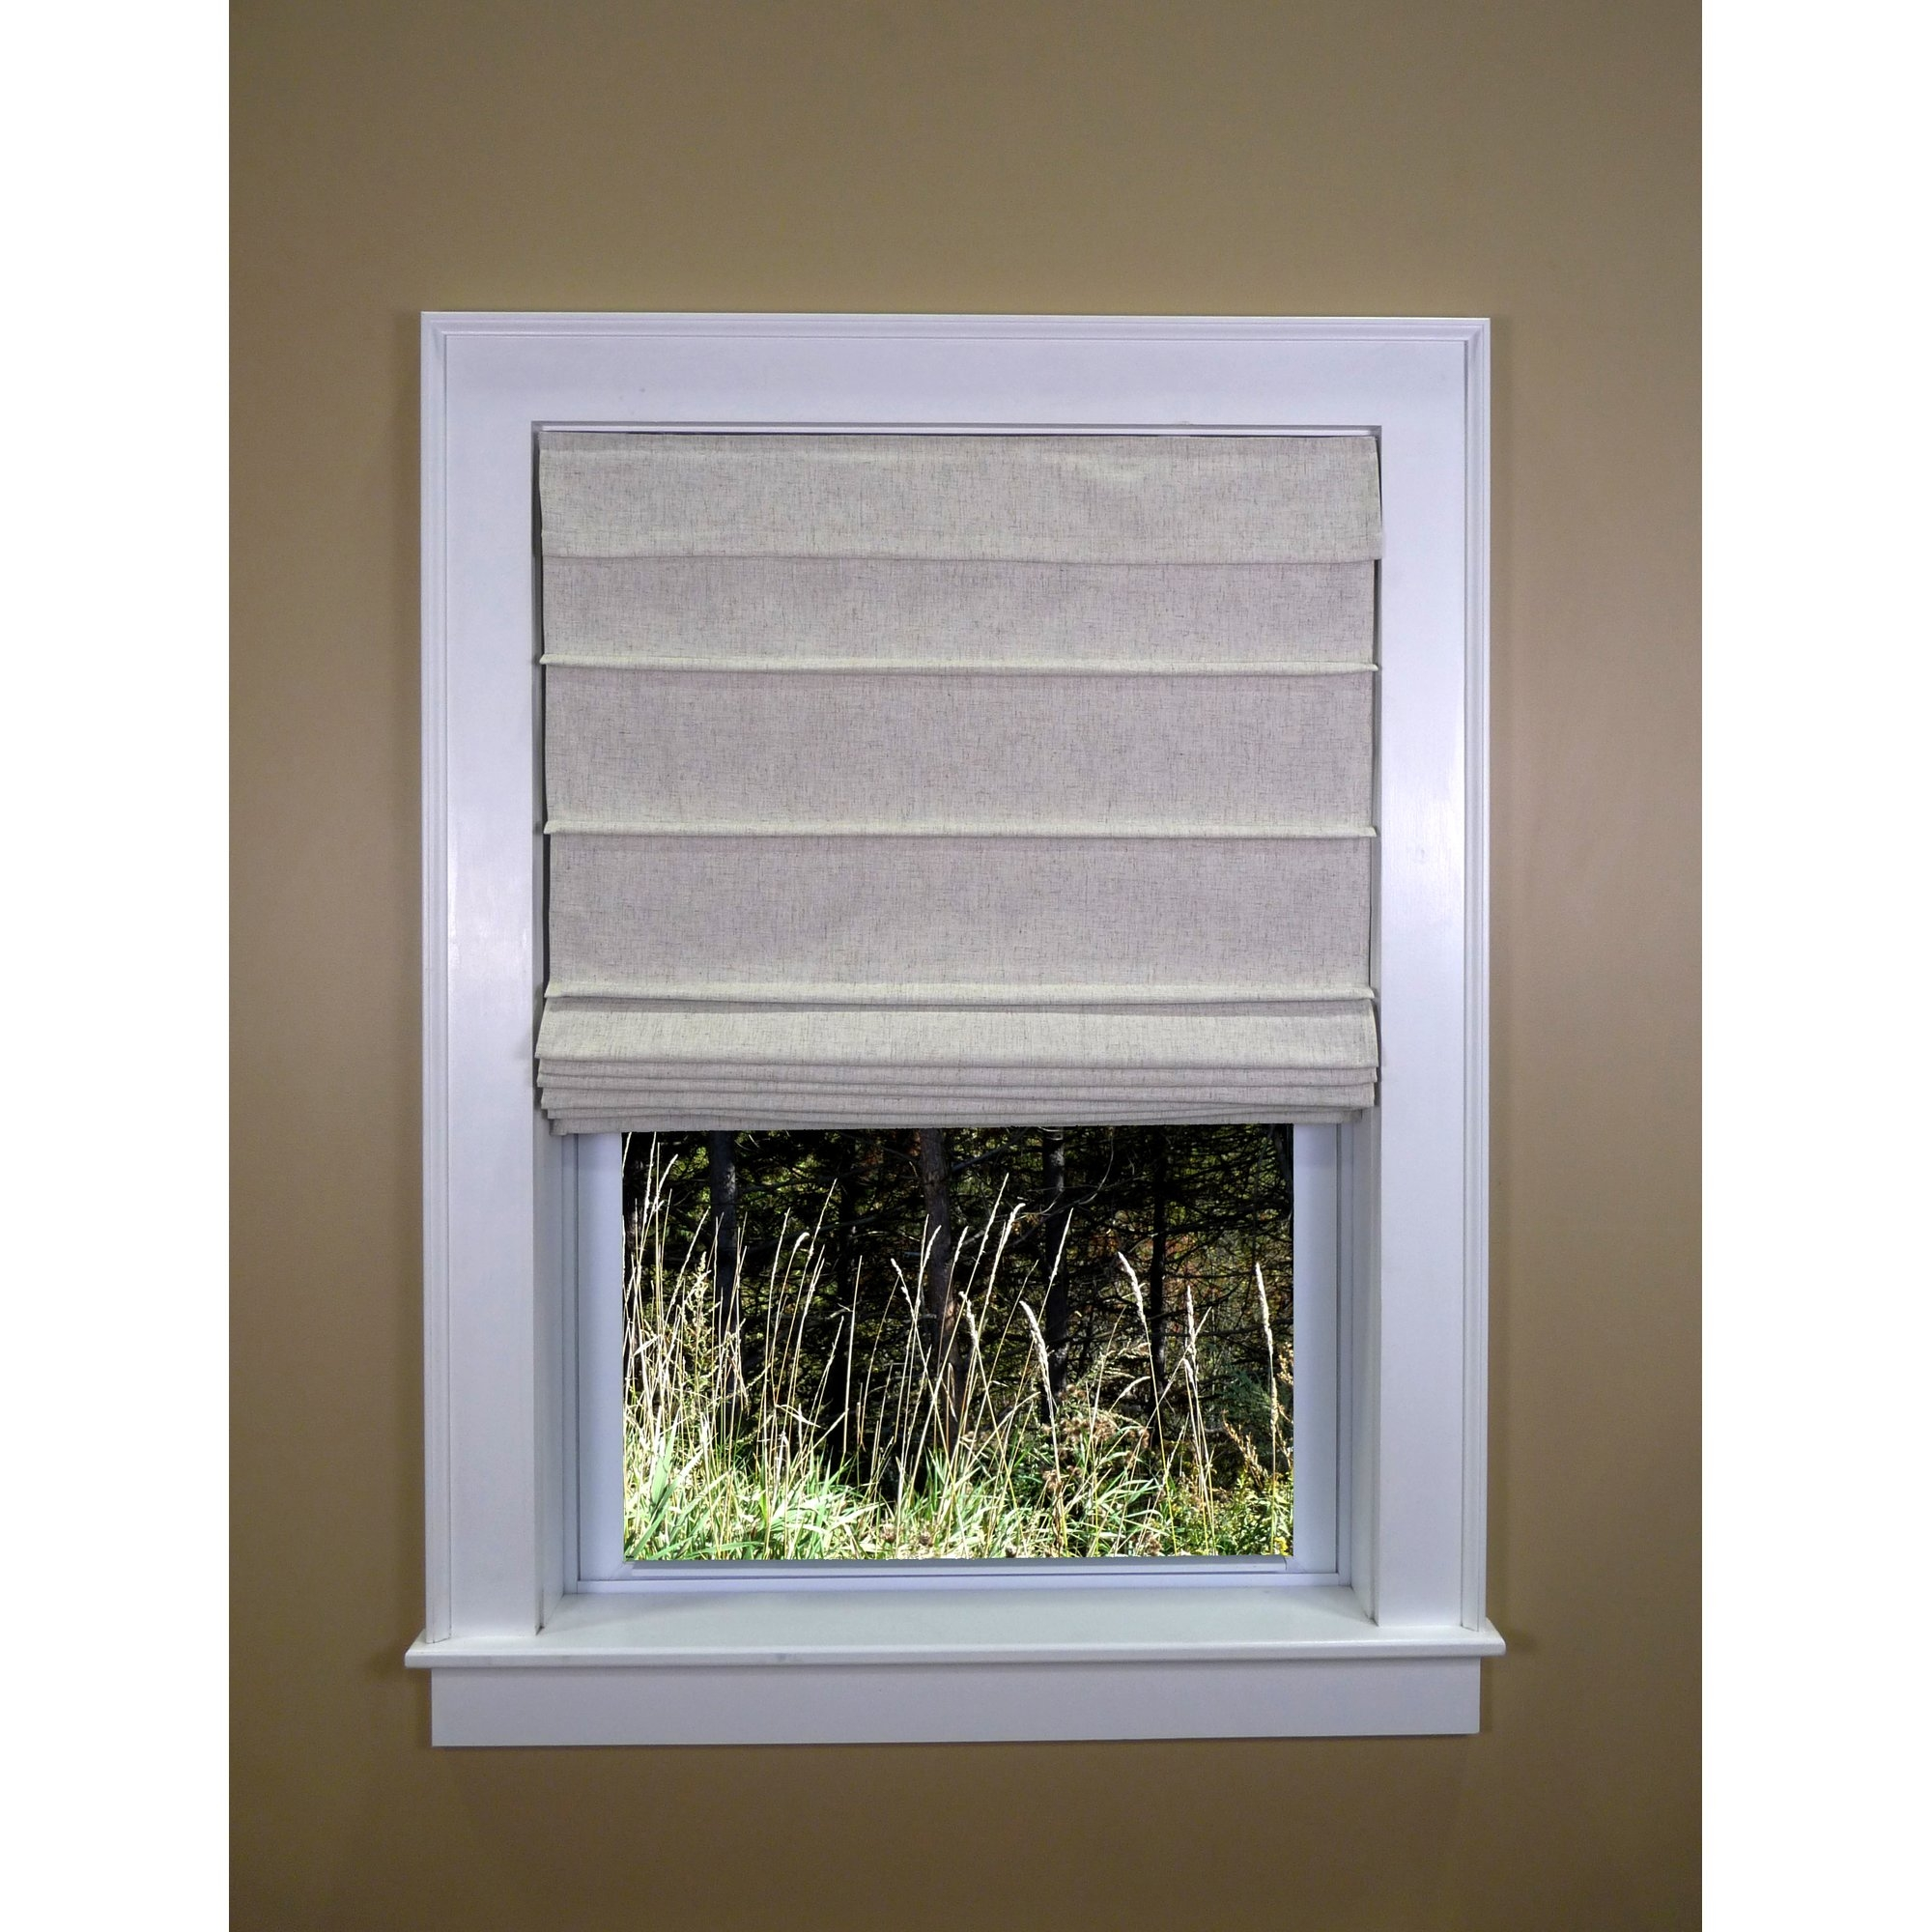 Green Mountain Vista Colt Thermal Backed Roman Shade Reviews Pertaining To Thermal Lined Roman Shades (Image 7 of 15)